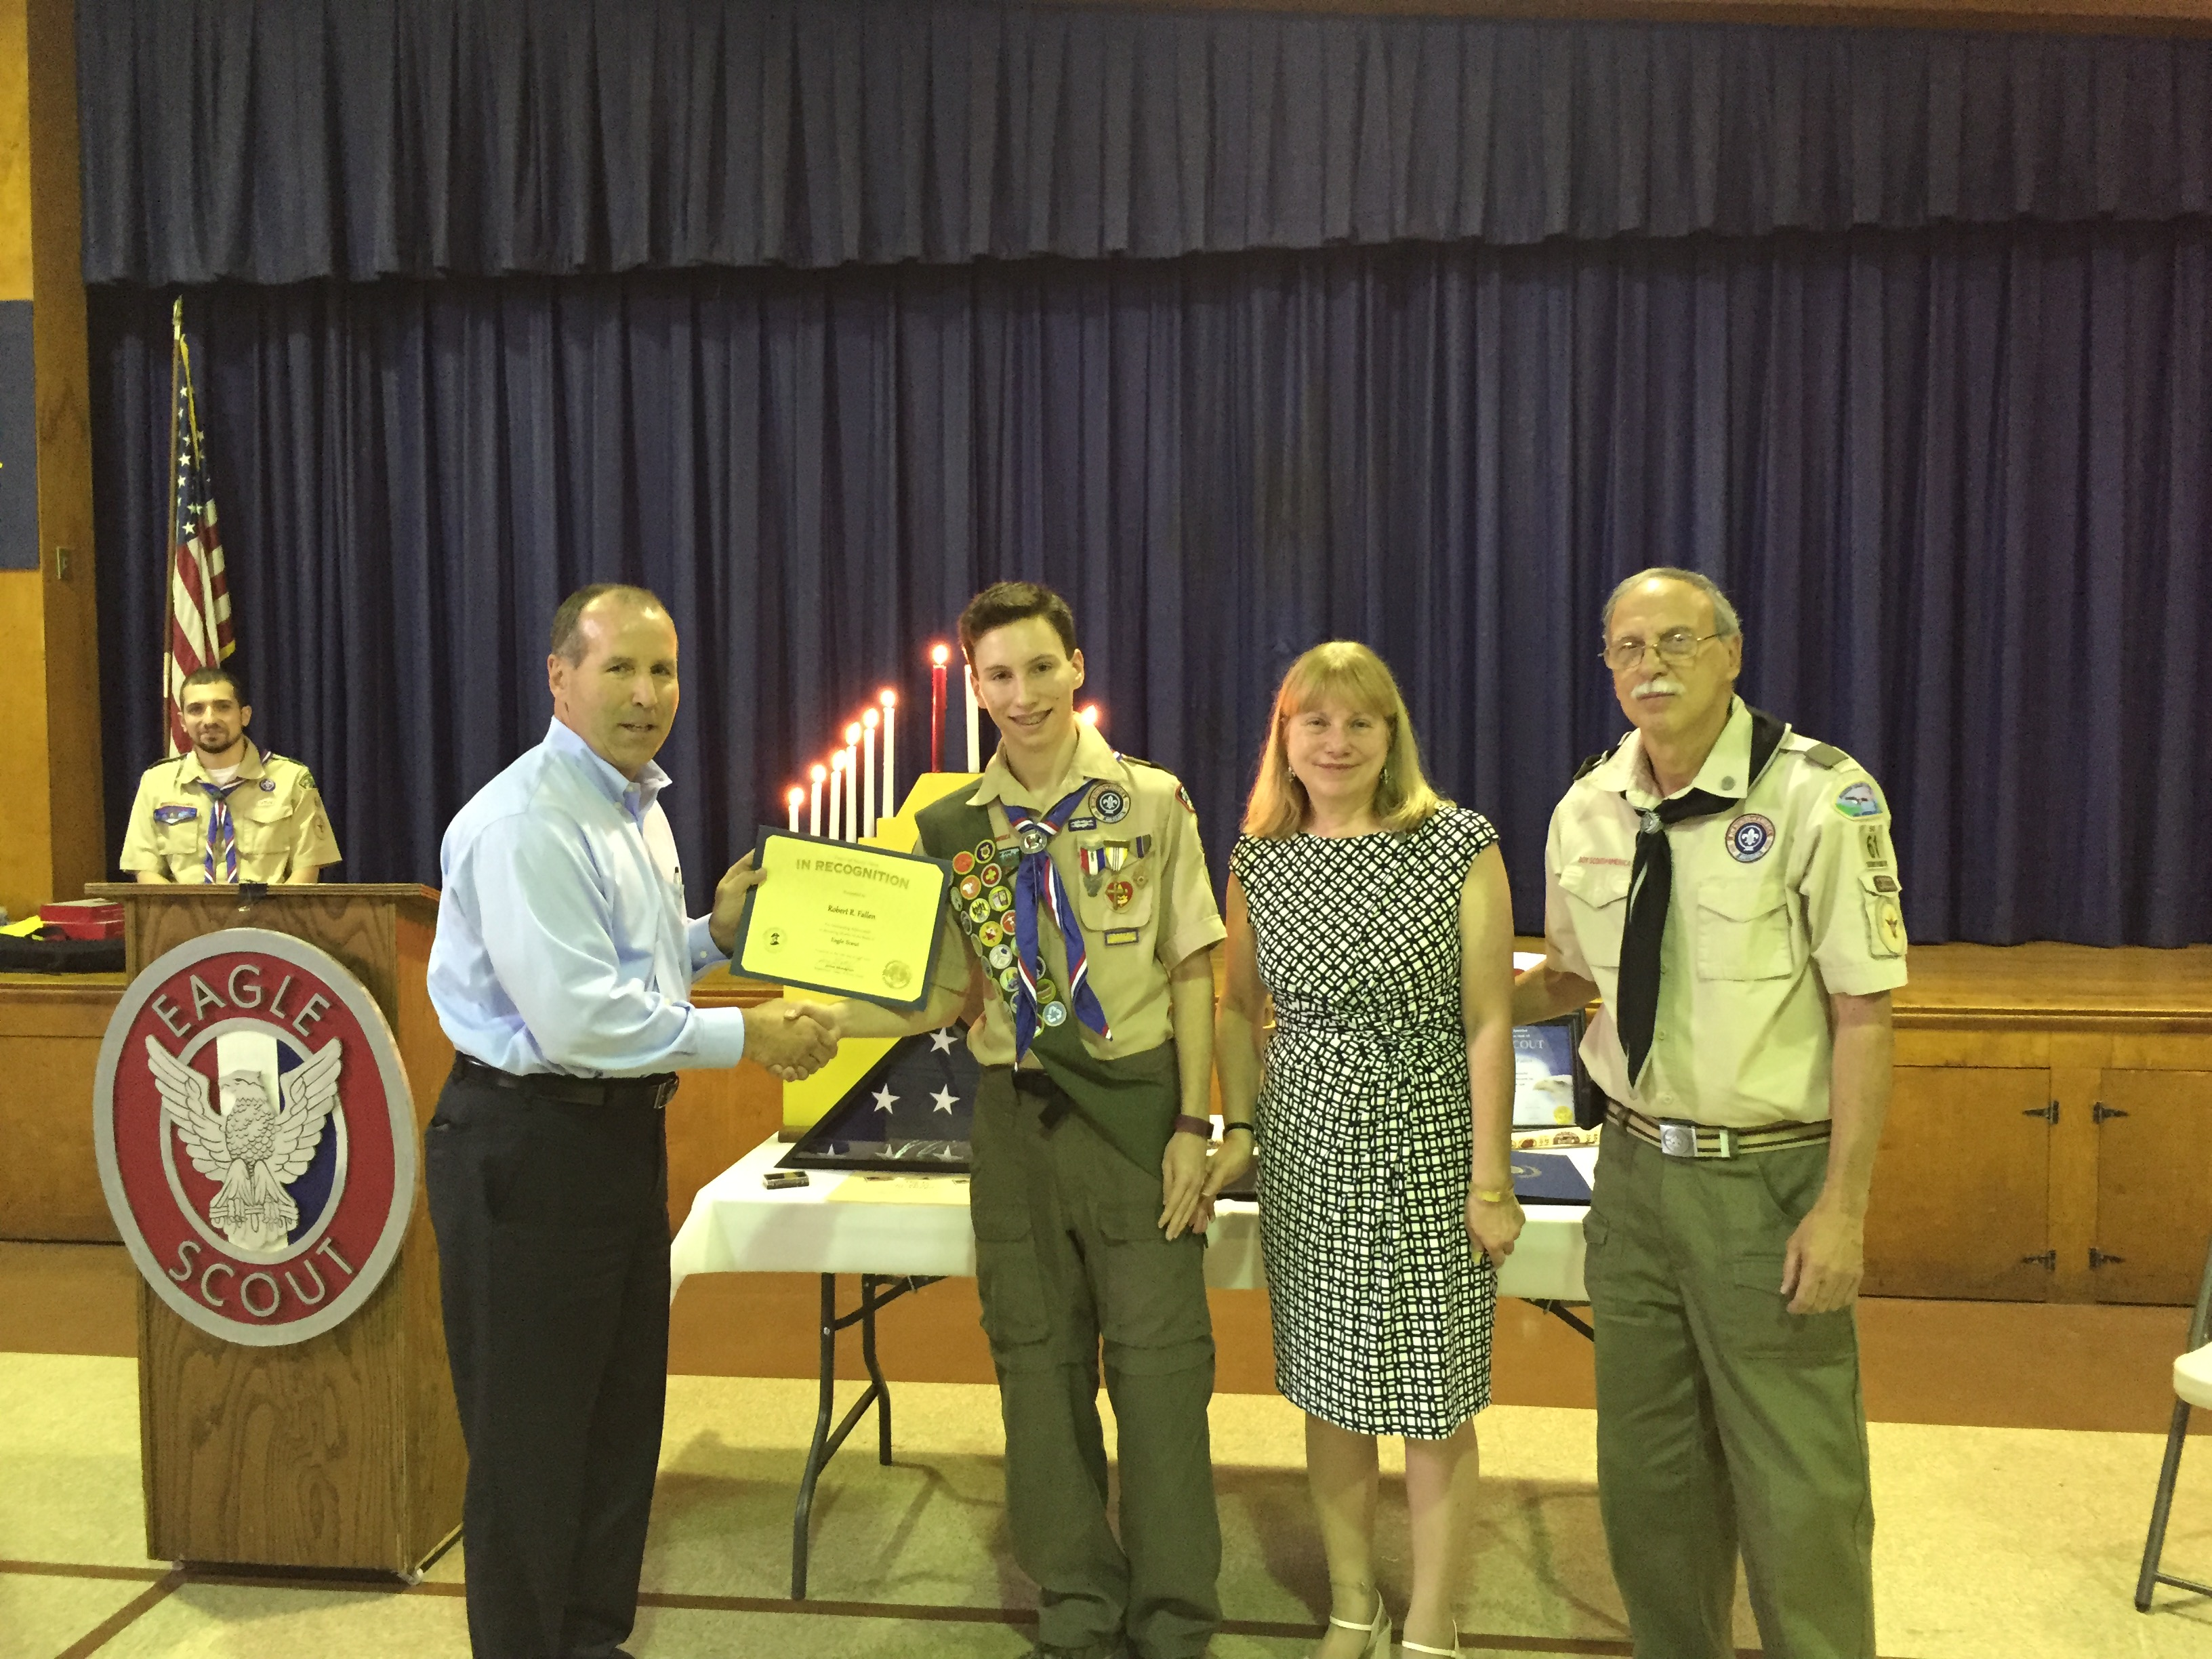 Supervisor Jim Monaghan presents Robert Fallen with rank of Eagle Scout for his work with the North Rockland Kids Closet